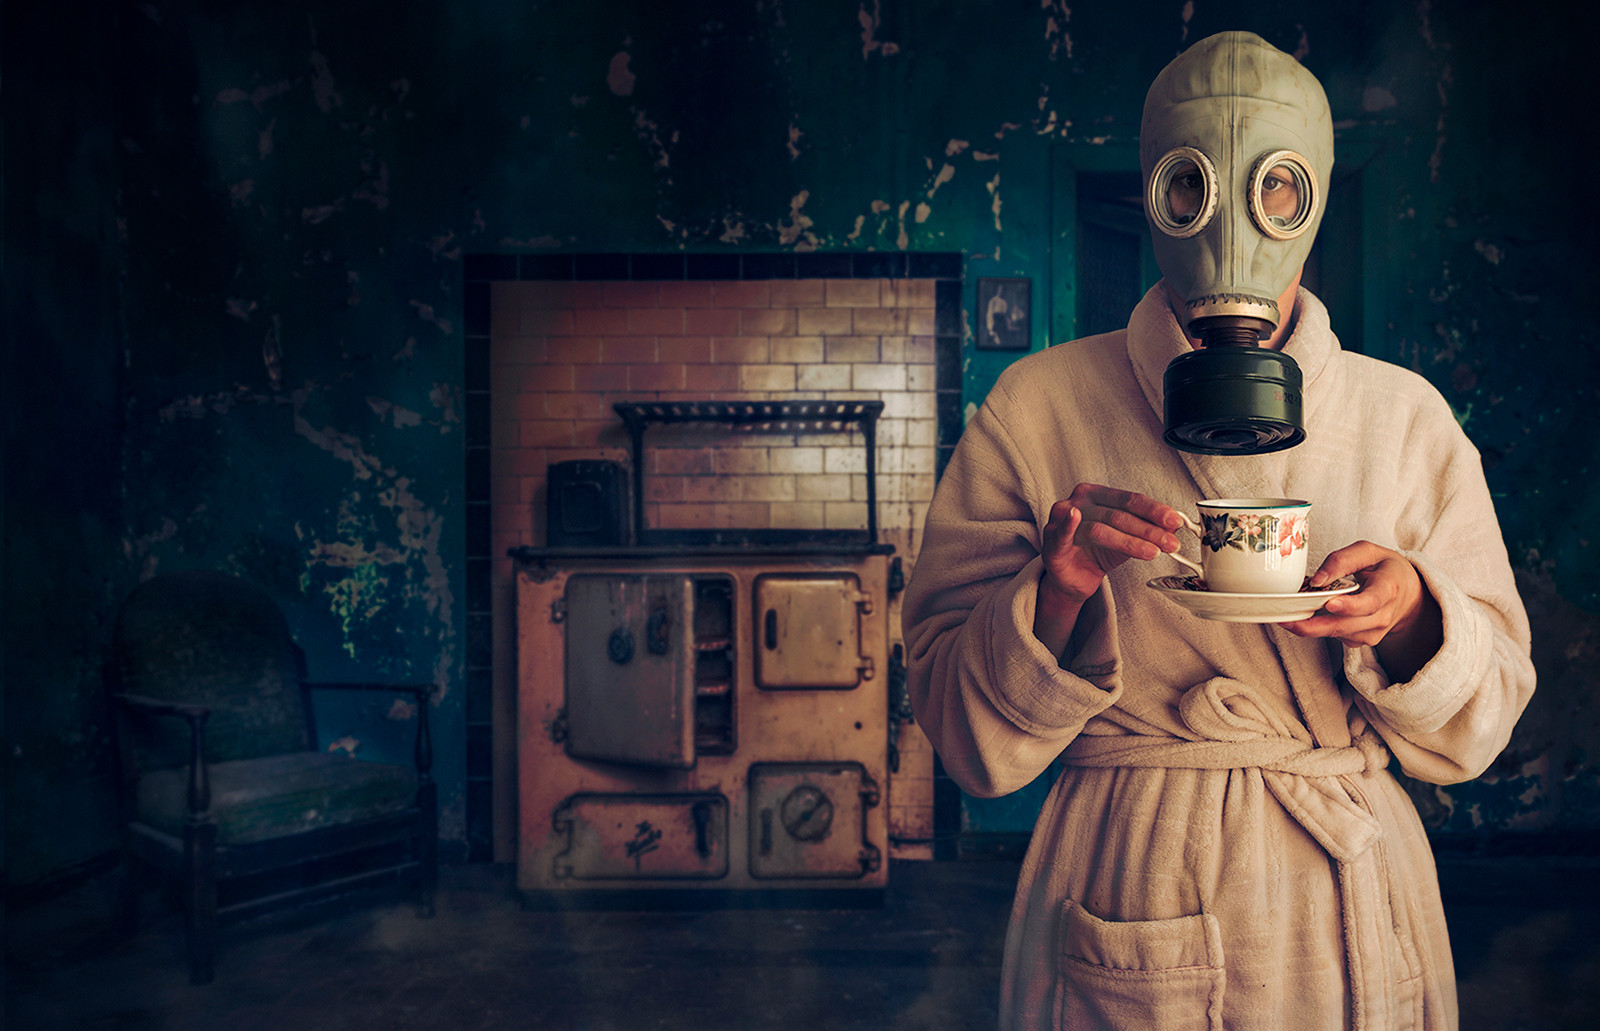 'Toxic Tea' by Mathew Canning ( 12 marks )